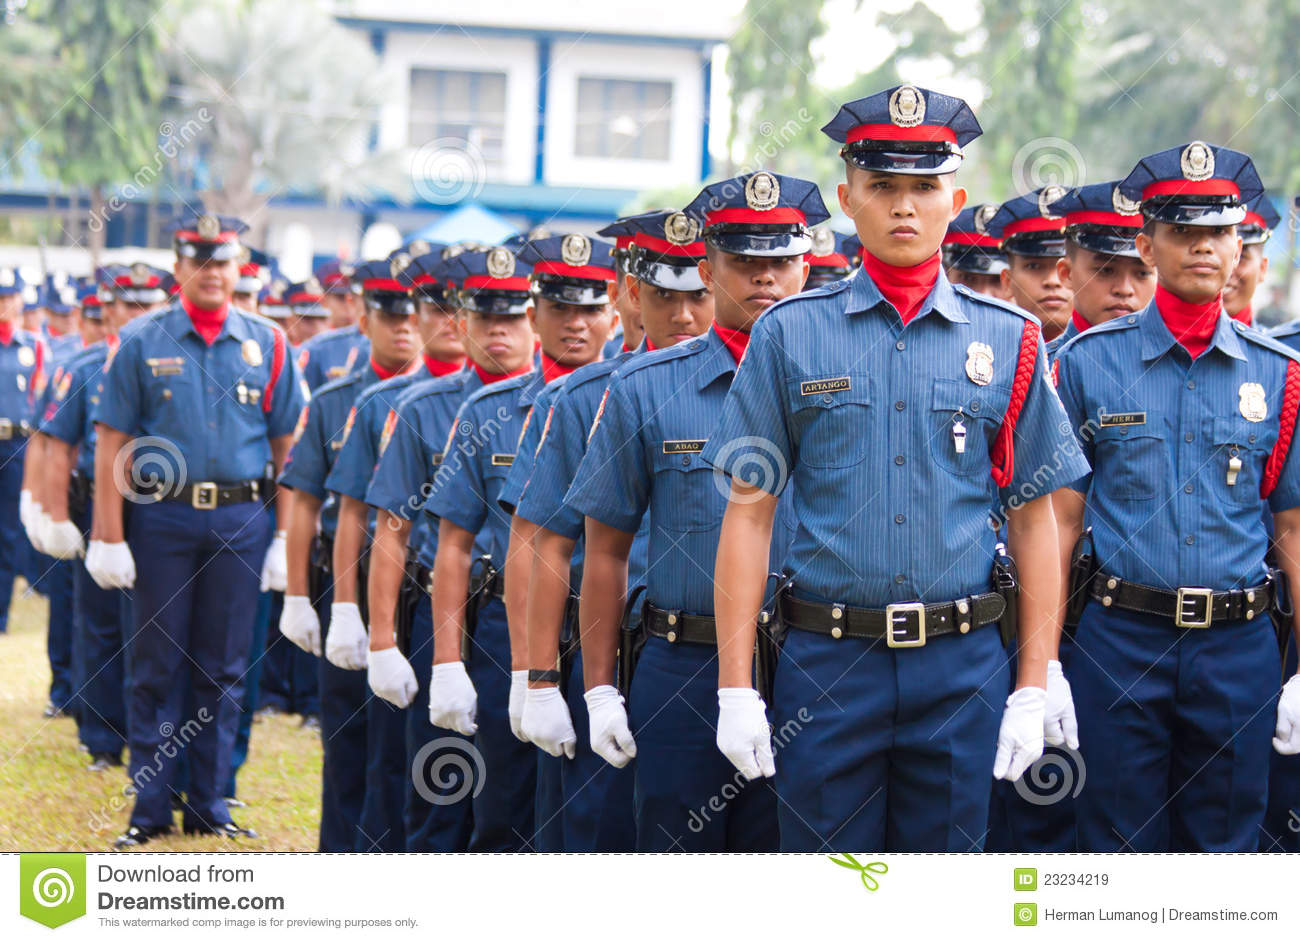 philippine national police law enforcement s code of ethics Politics & government law enforcement & police next  philippine national police code of ethics what is the code of ethics for philippine national.